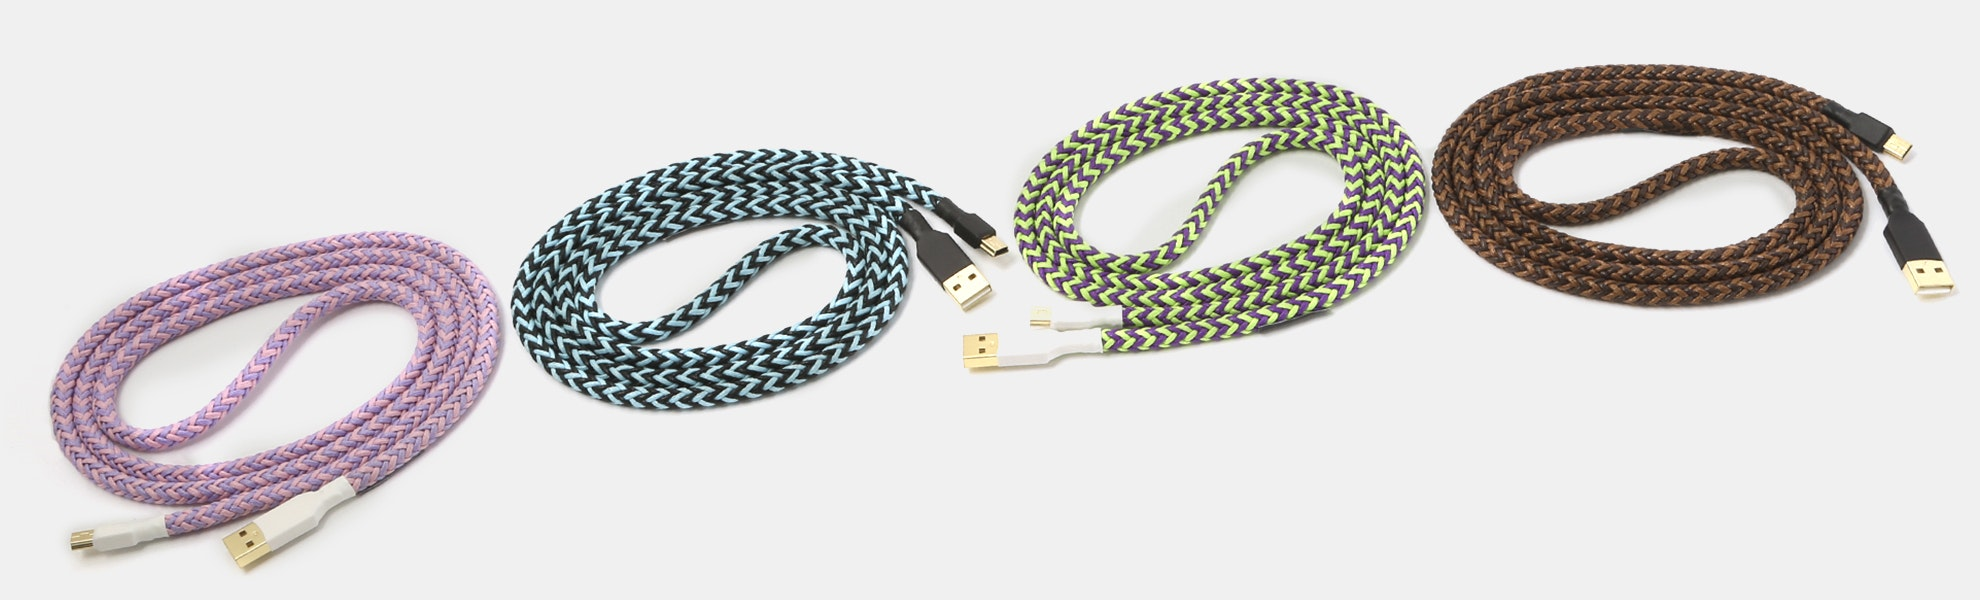 Keycap Themed Braided Nylon USB Cable